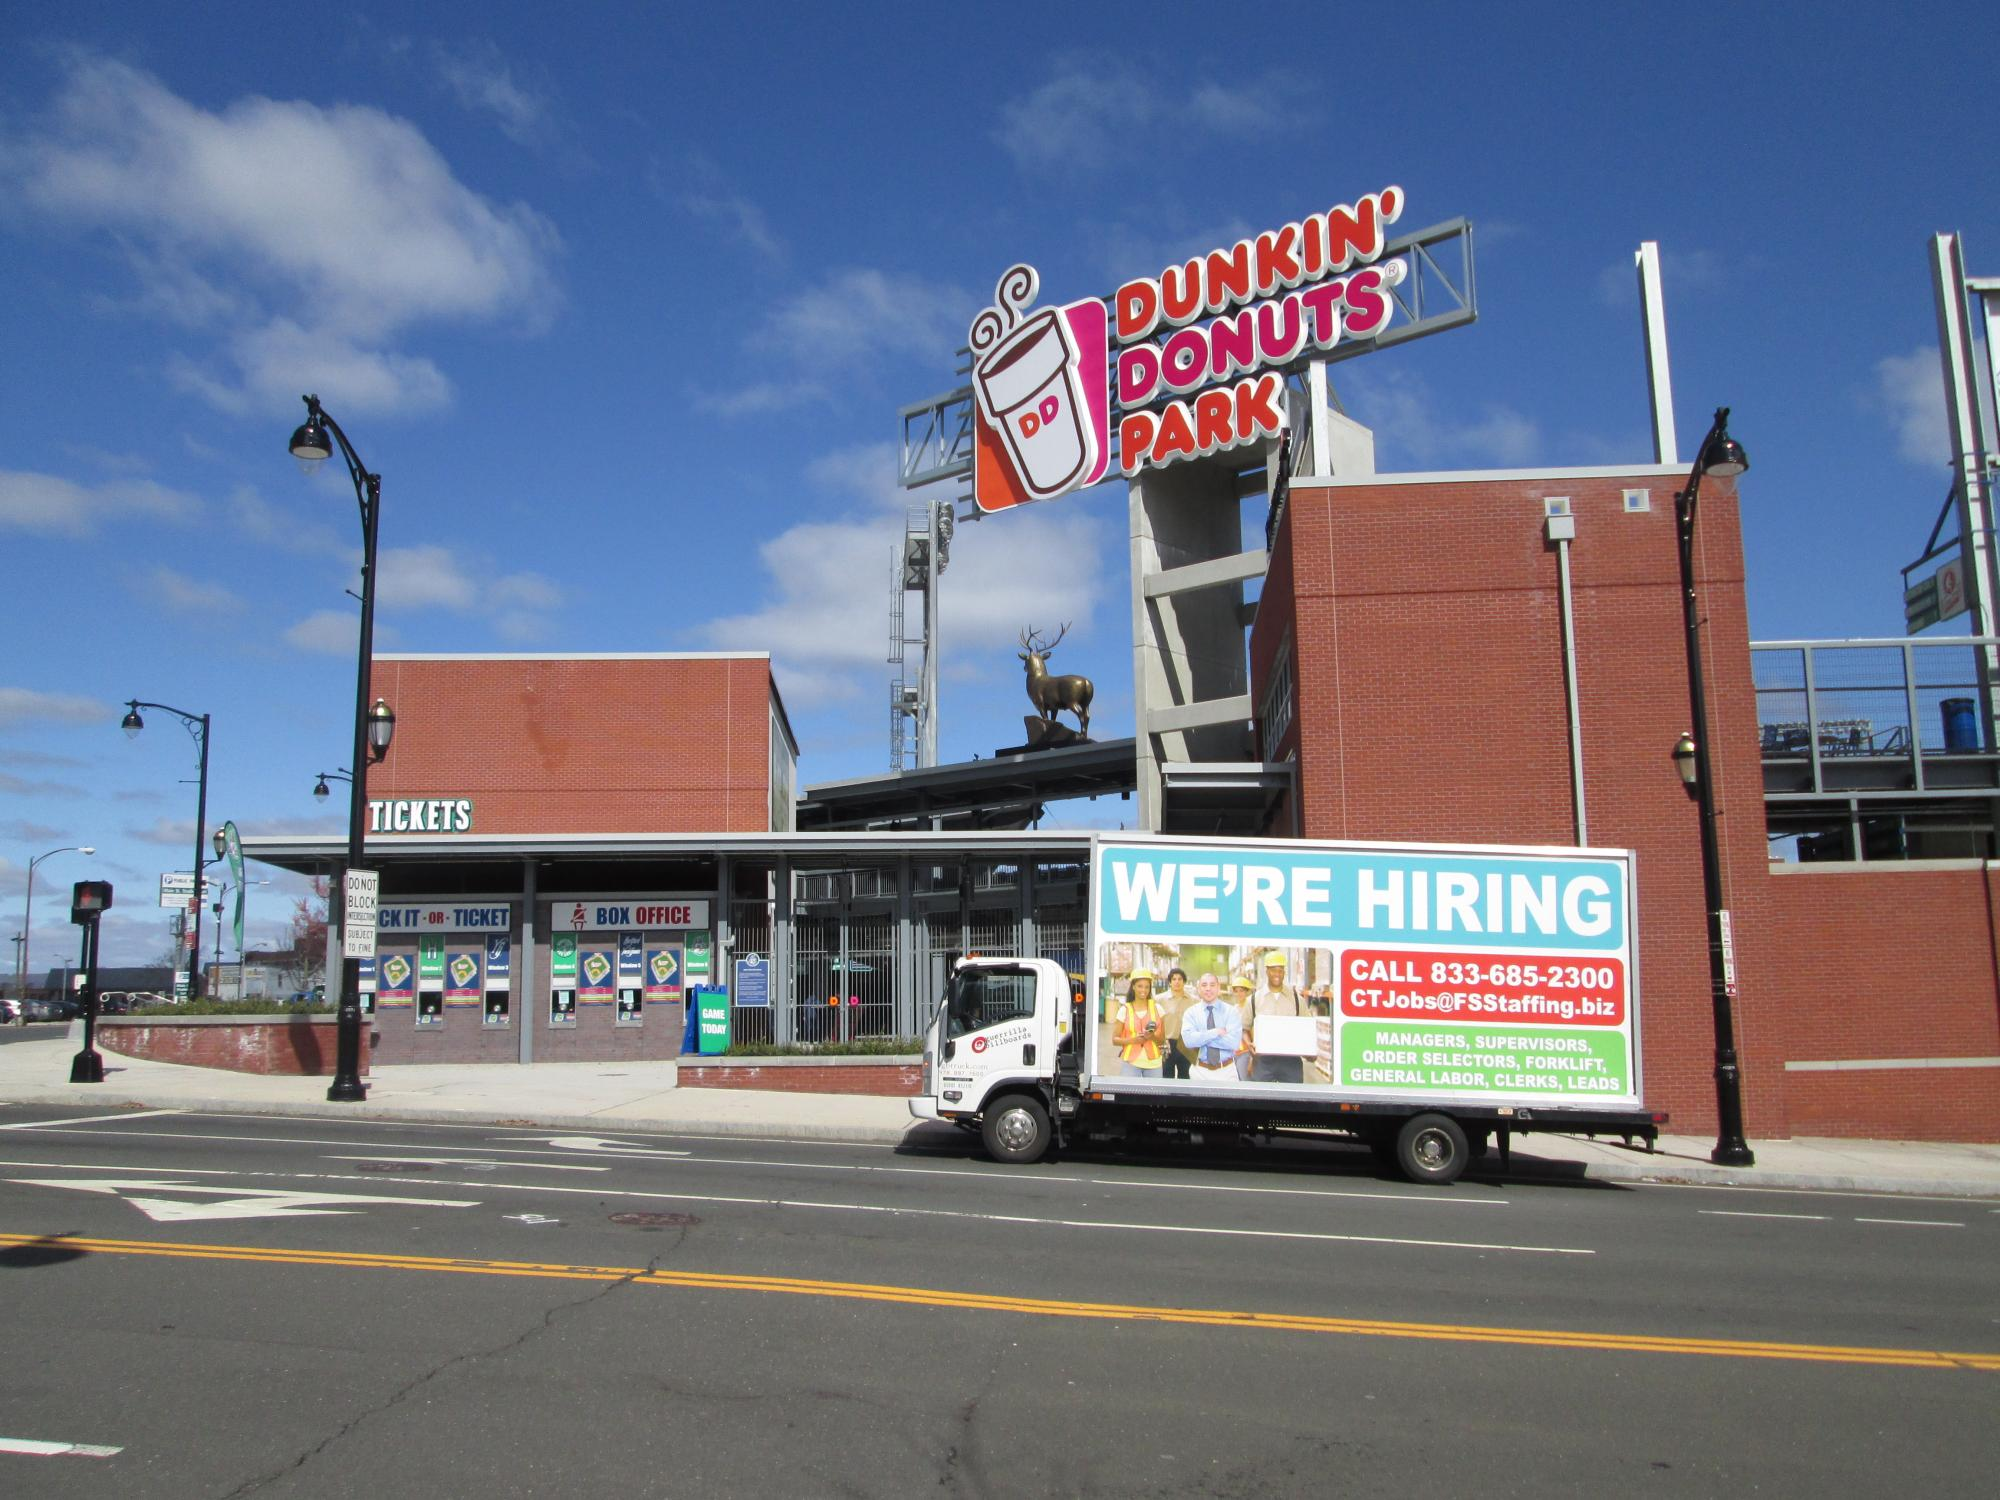 We're Hiring ad on a billboard truck in Hartford CT